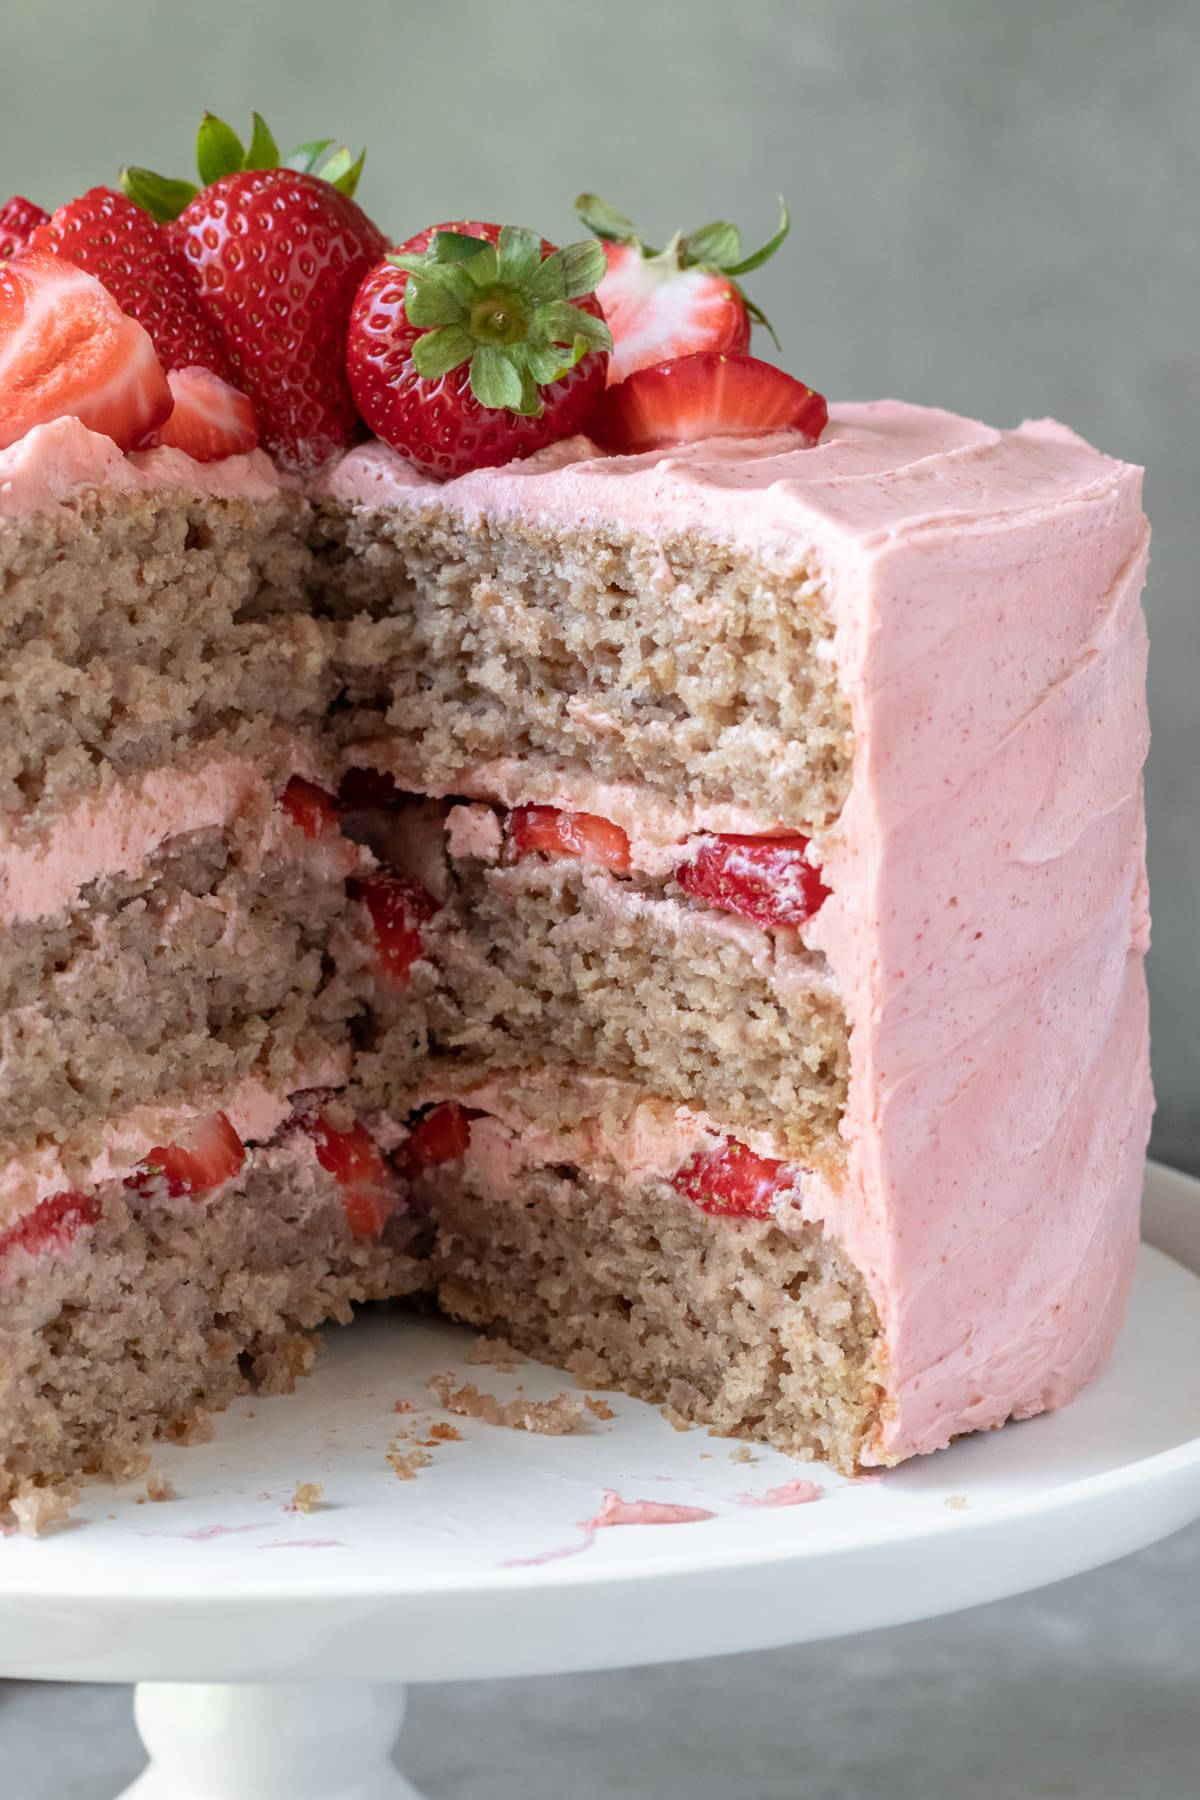 close up of 3-tier cake with slices removed showing natural color of strawberry cake, no dye